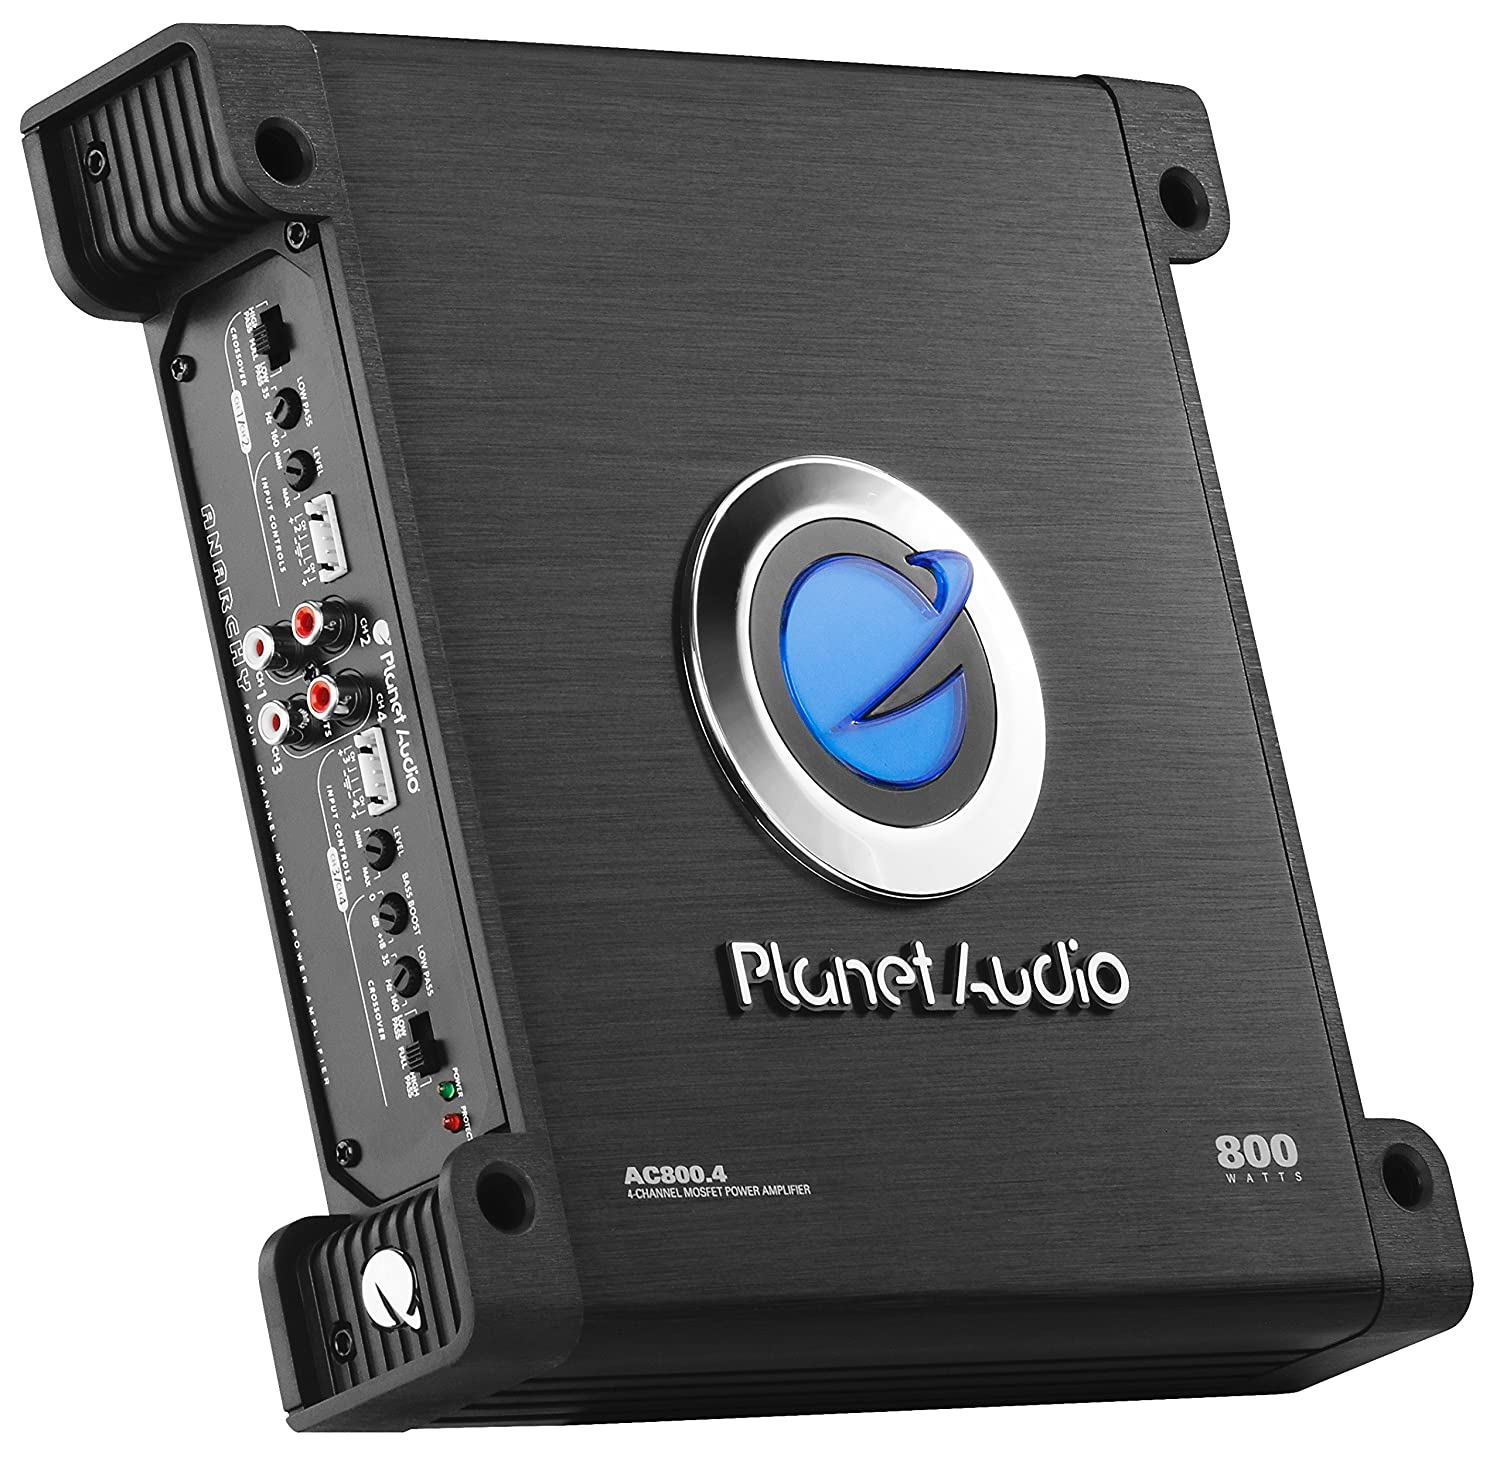 Planet Audio Ac8004 Anarchy 800 Watt 4 Channel 2 Wiring For Front Component Speakersimg13691jpg Ohm Stable Class A B Full Range Bridgeable Mosfet Car Amplifier Electronics